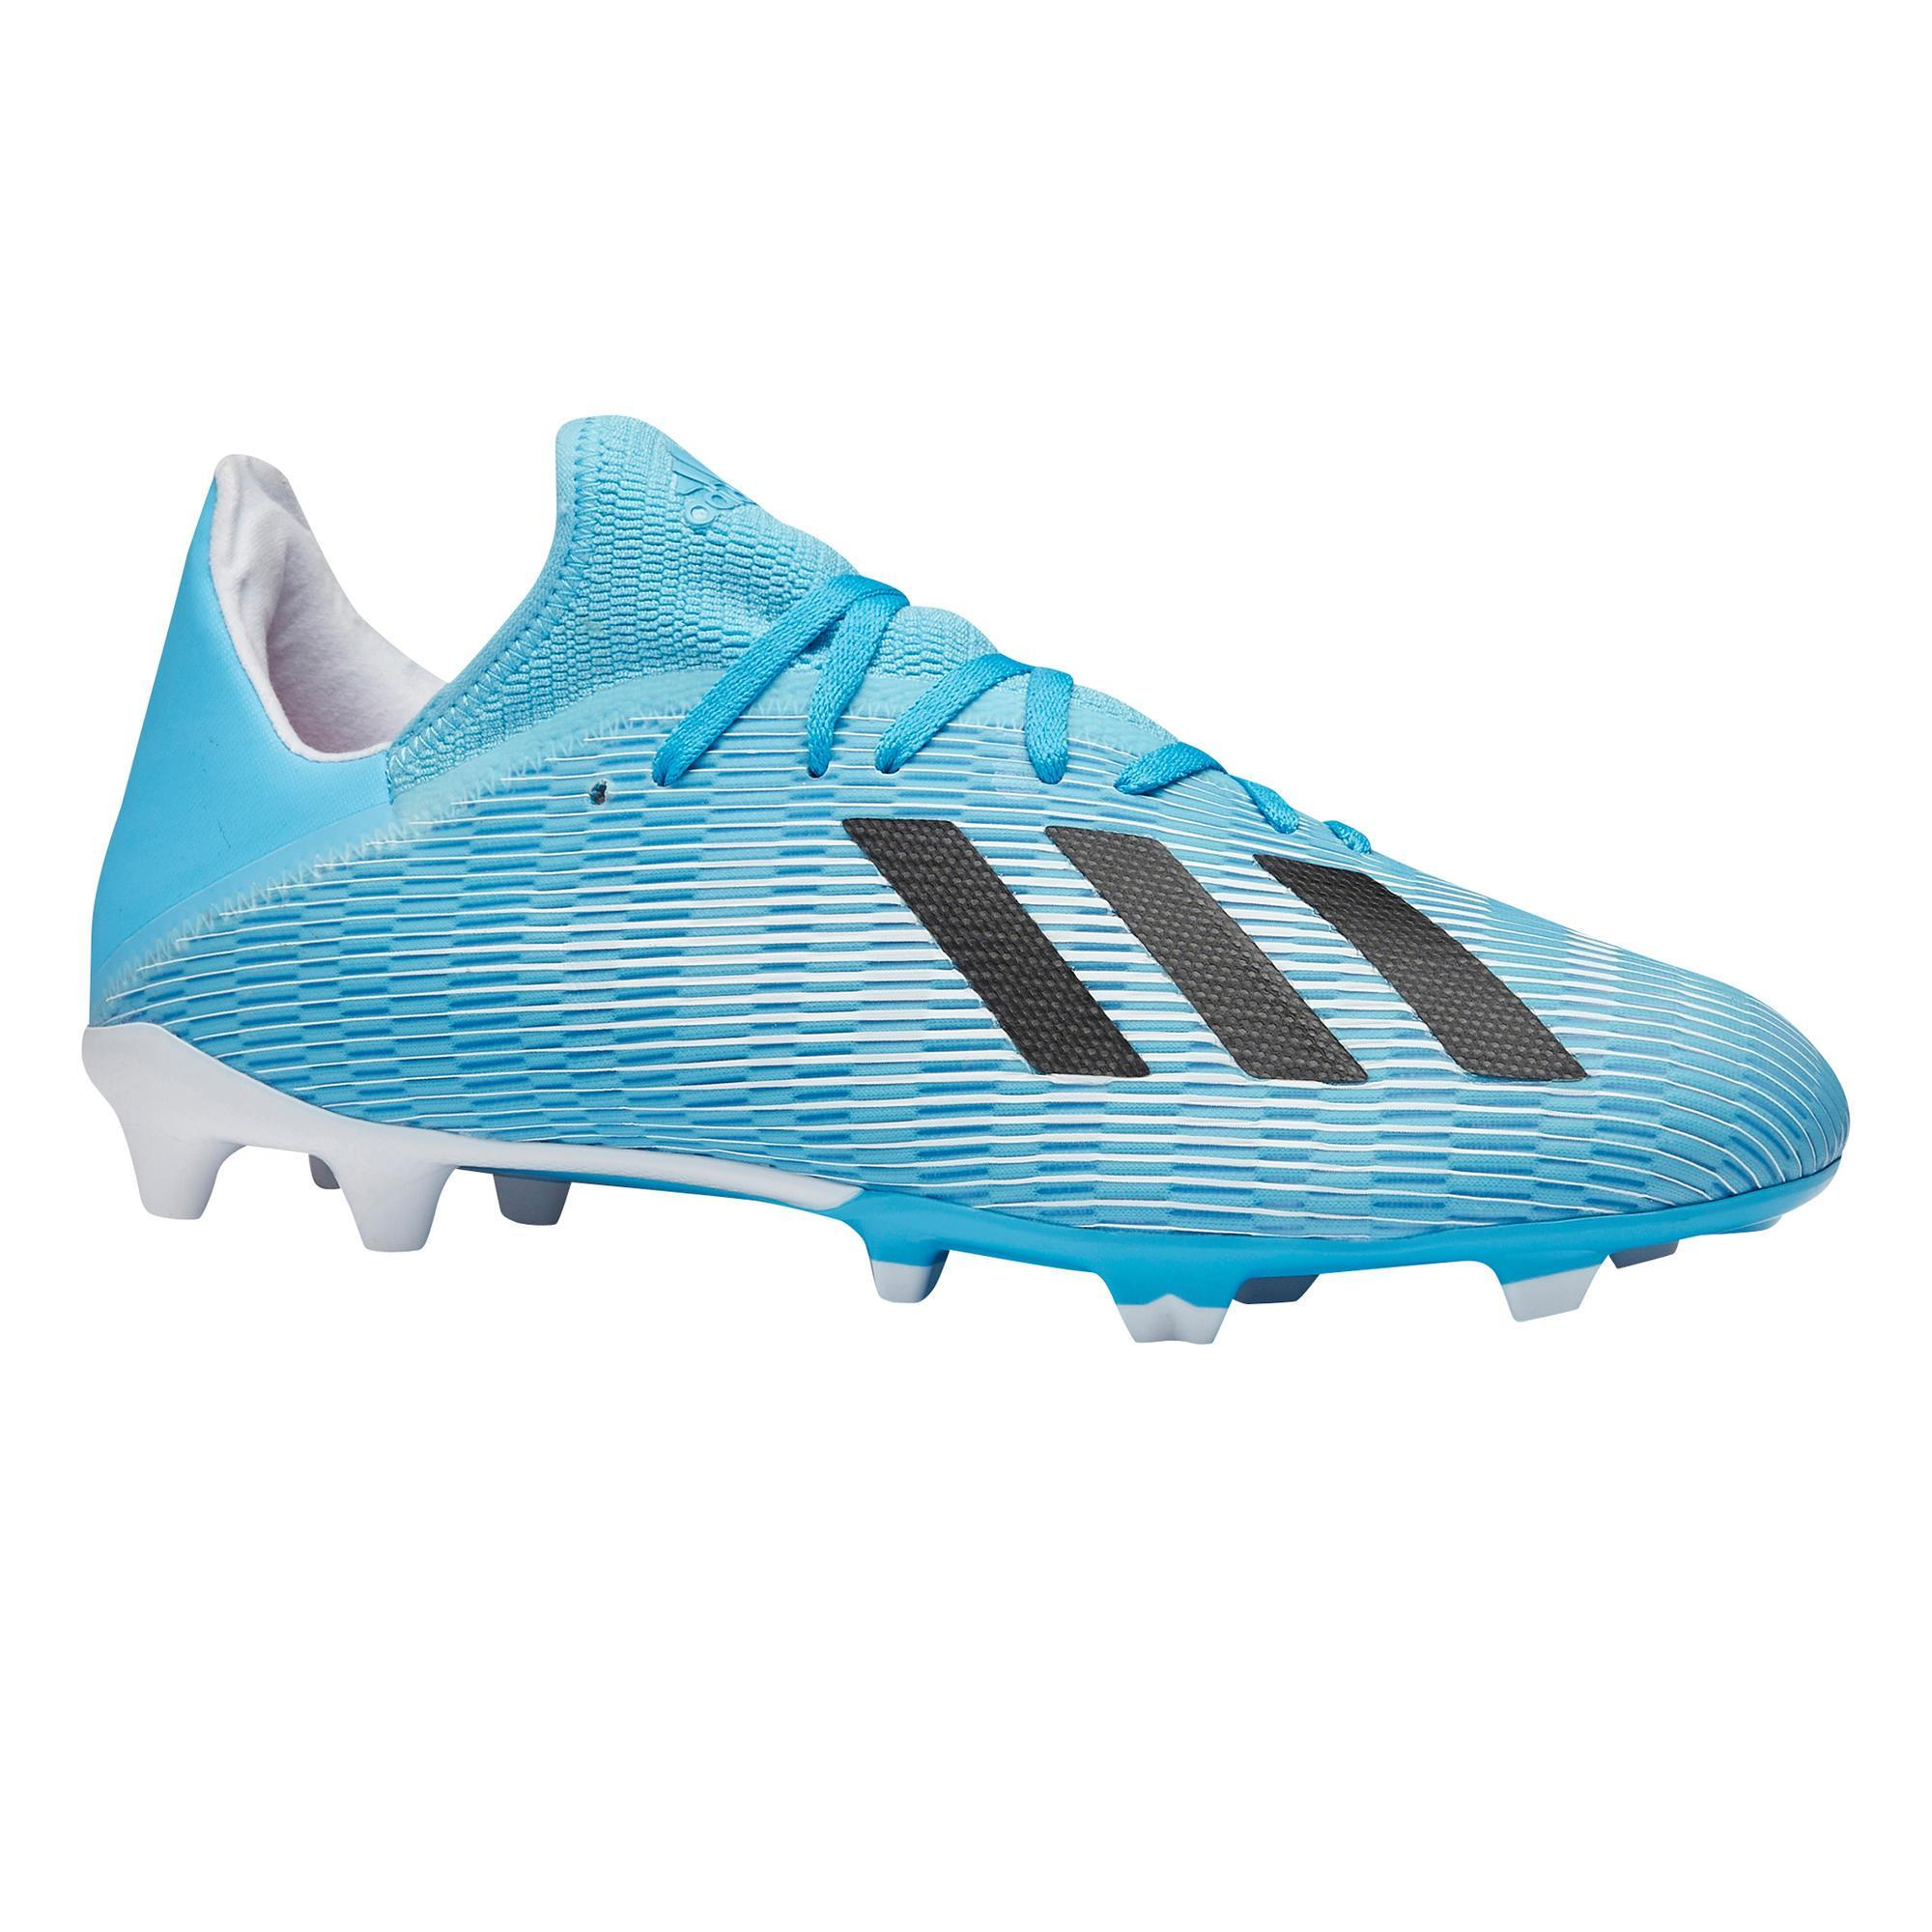 sale uk new arrival how to buy Chaussures de Football pas cher: Kipsta, Nike, Adidas, Puma ...